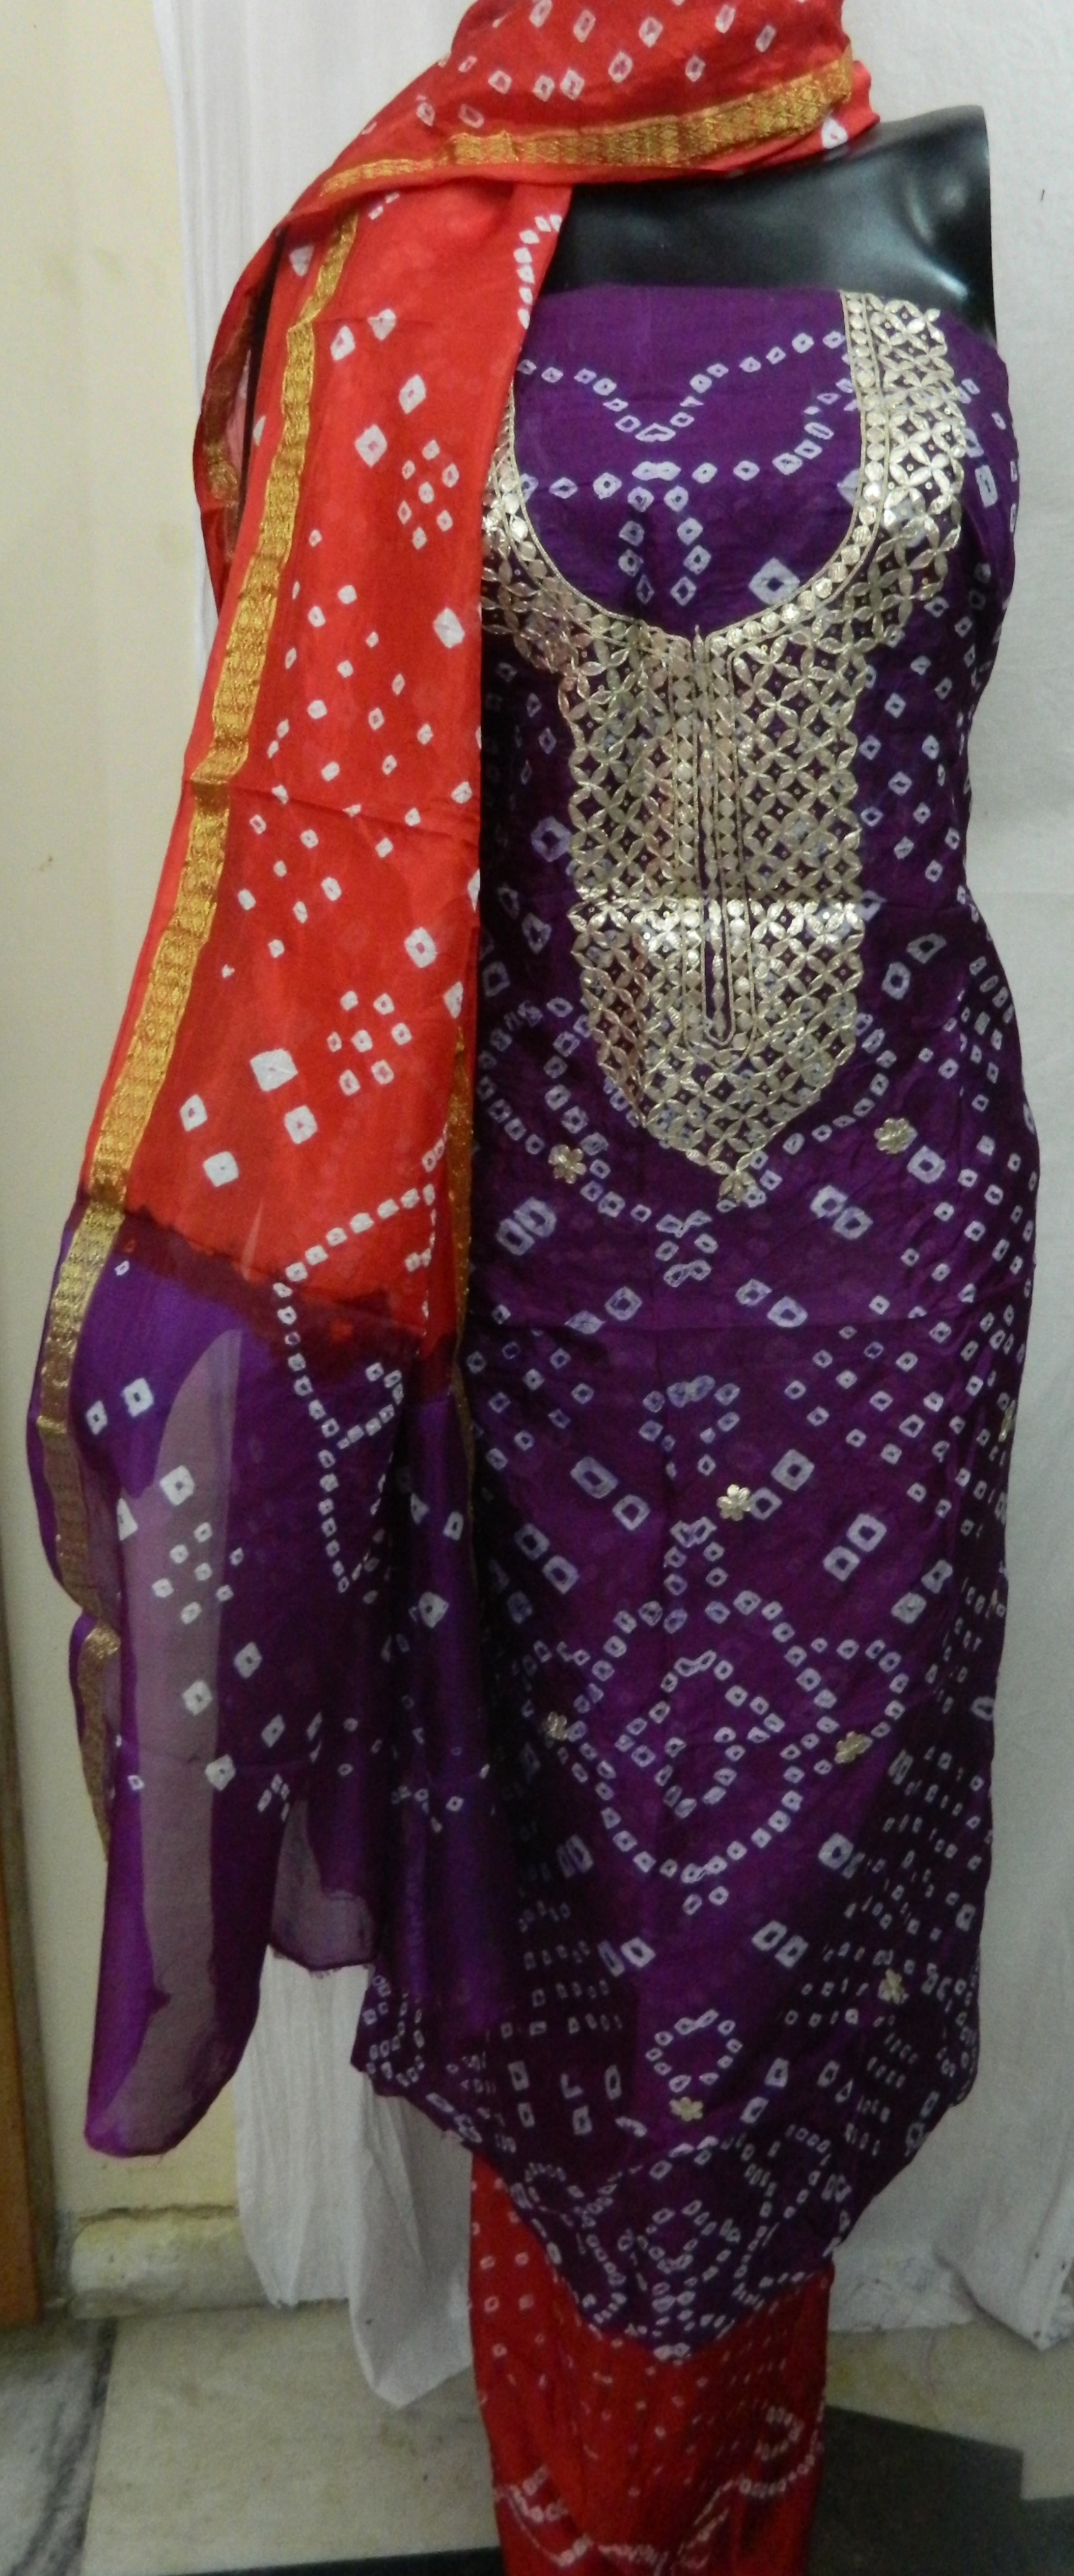 Hello,   Greetings from Aaditri Clothing from Jaipur. We are Manufacturer from Jaipur, Rajasthan.   Aaditri Bring To You Festival Offer.  Bandhej Art Silk Gota Patti Suit., .   Fabric  Top - Bandhej Art Silk  Bottom - Bandhej Art Silk  Dupatta - Bandhej Art Silk   Size -Top, Bottom, Dupatta- 2.5   Bandhej Art silk gota patti Suit in Different Color and many more items with effective & timely delivery.   Other Colour is available in this Design and Fabric.  You can order in Bulk than we will give you Best Prices.  You can order for Assorted Pieces or same pieces(as you like)   Contact us for booking  number: 7877866122(whatsapp)  8824796750(whatsapp)  7877966122(calling number)  E-mail Address:- aaditri.jaipur@gmail.com